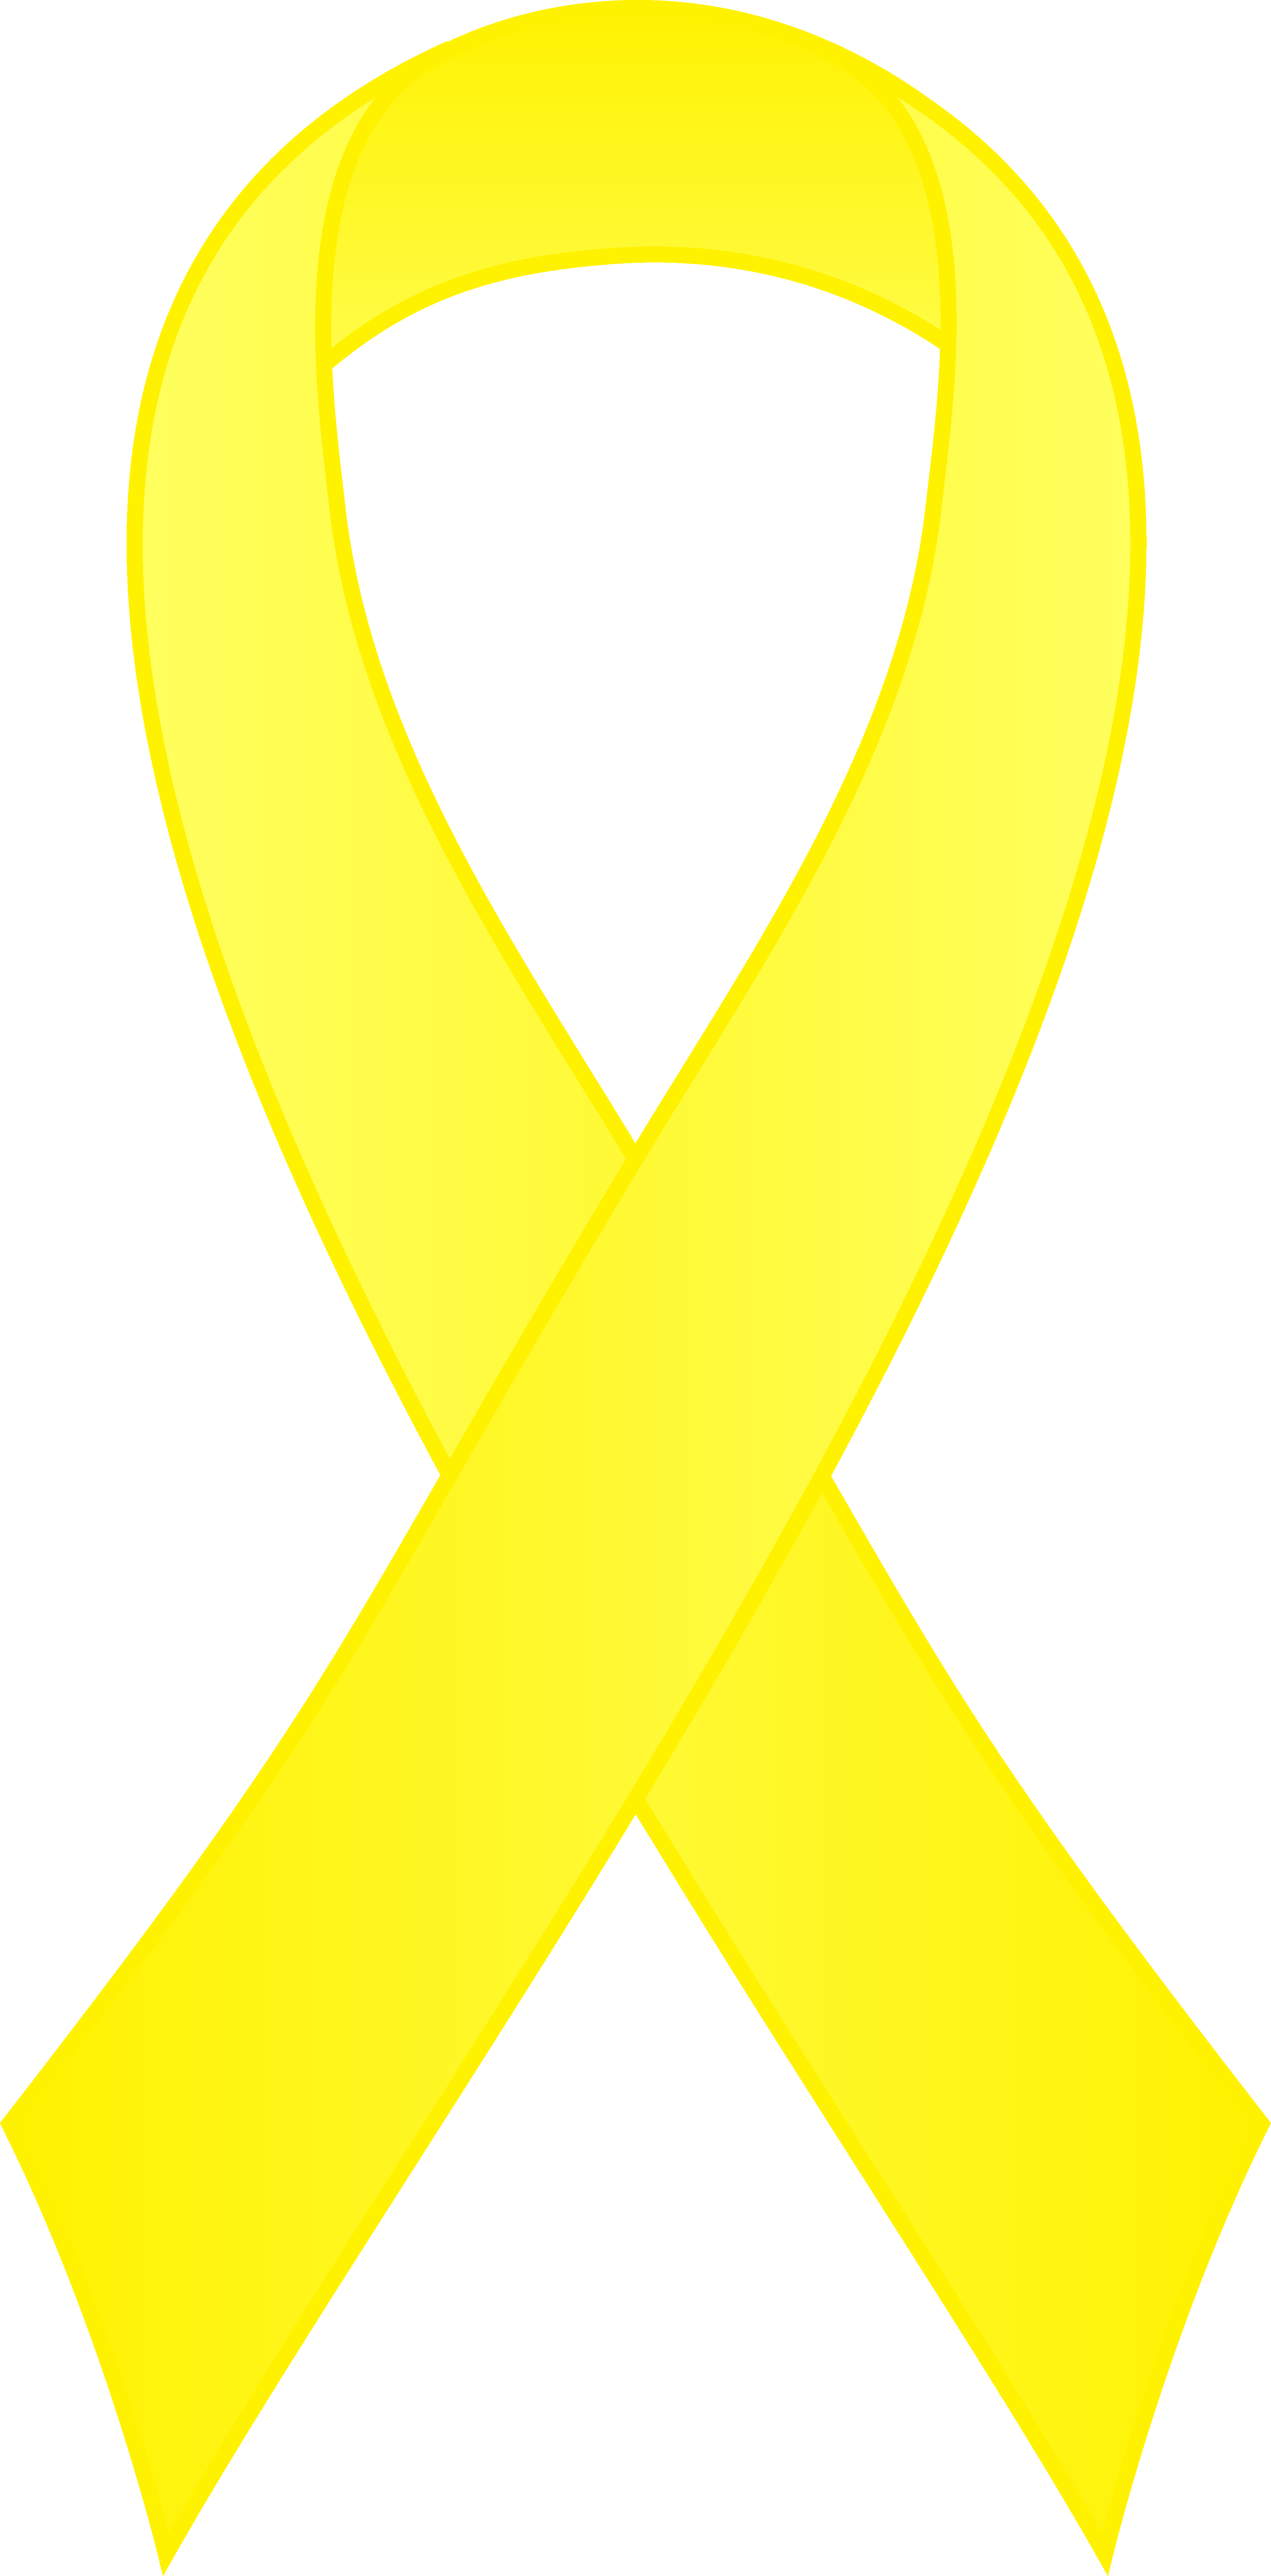 Awareness Ribbon Clipart - Cliparts.co